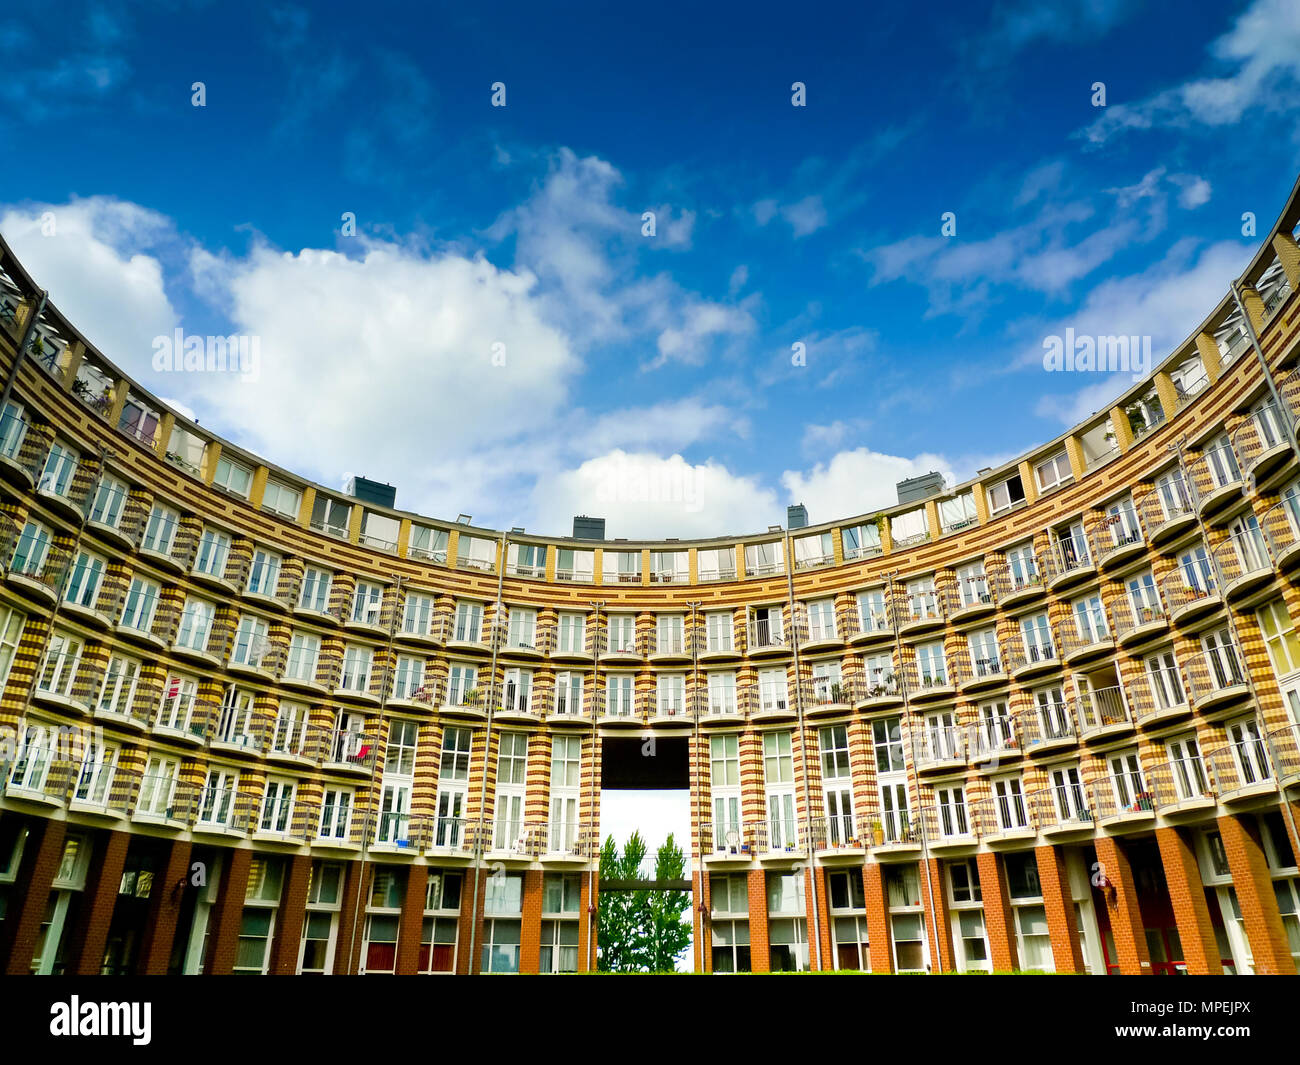 Circular residential building in Ertshaven, Amsterdam's Eastern Docklands, Netherlands - Stock Image